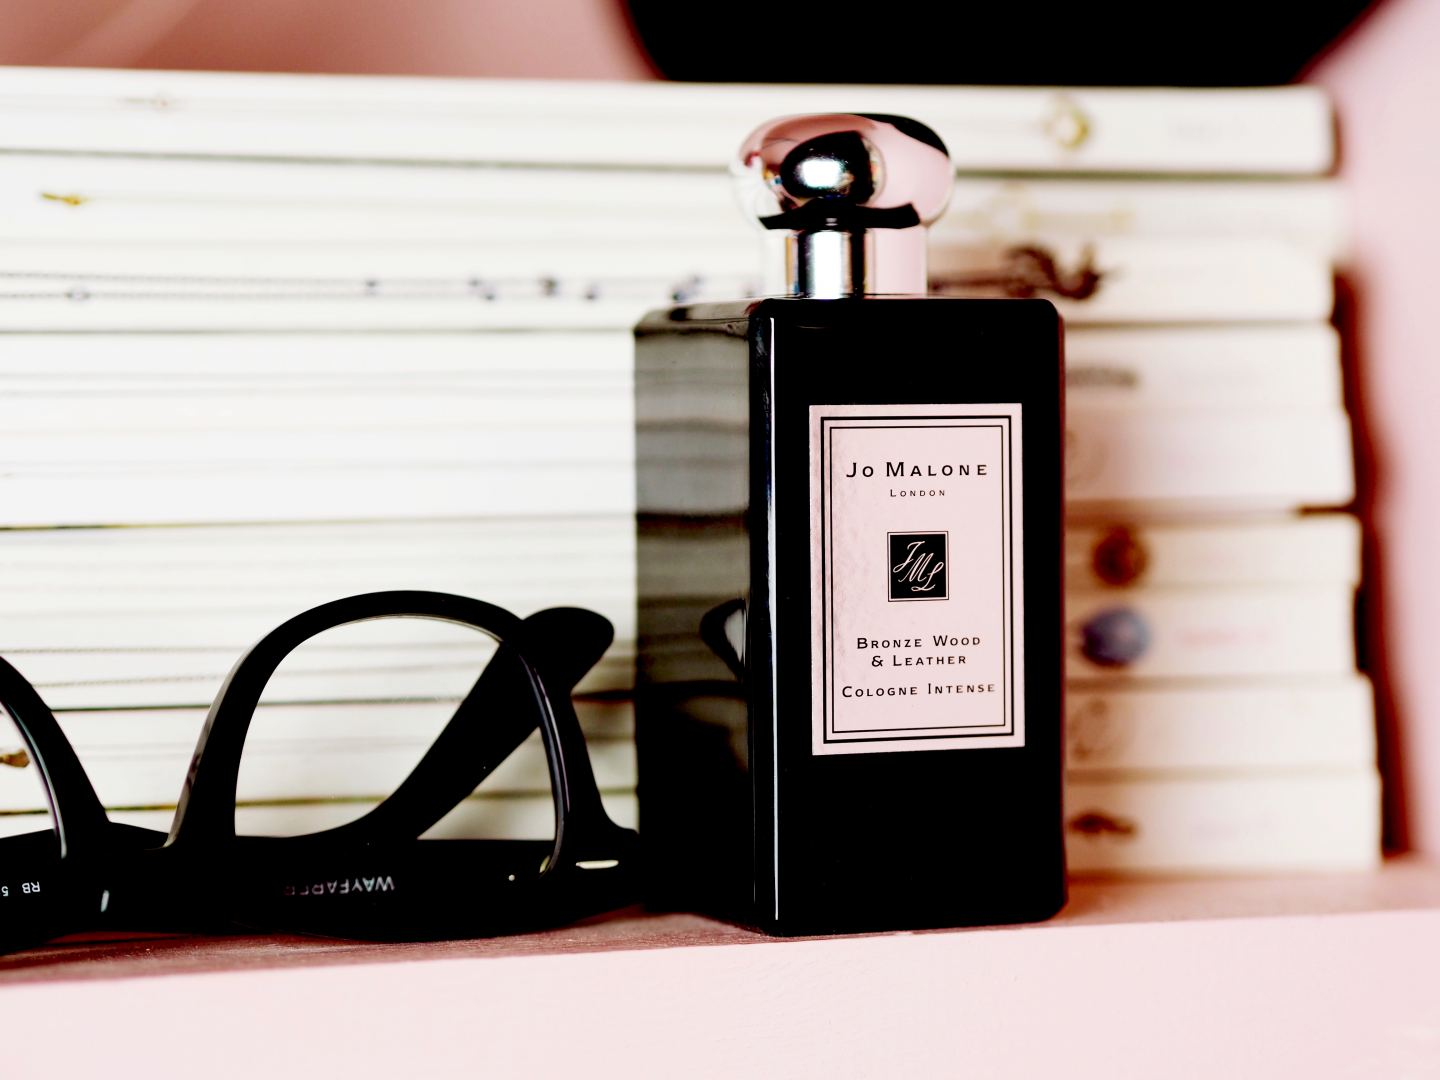 jo malone london 'Bronze Wood & Leather' Cologne